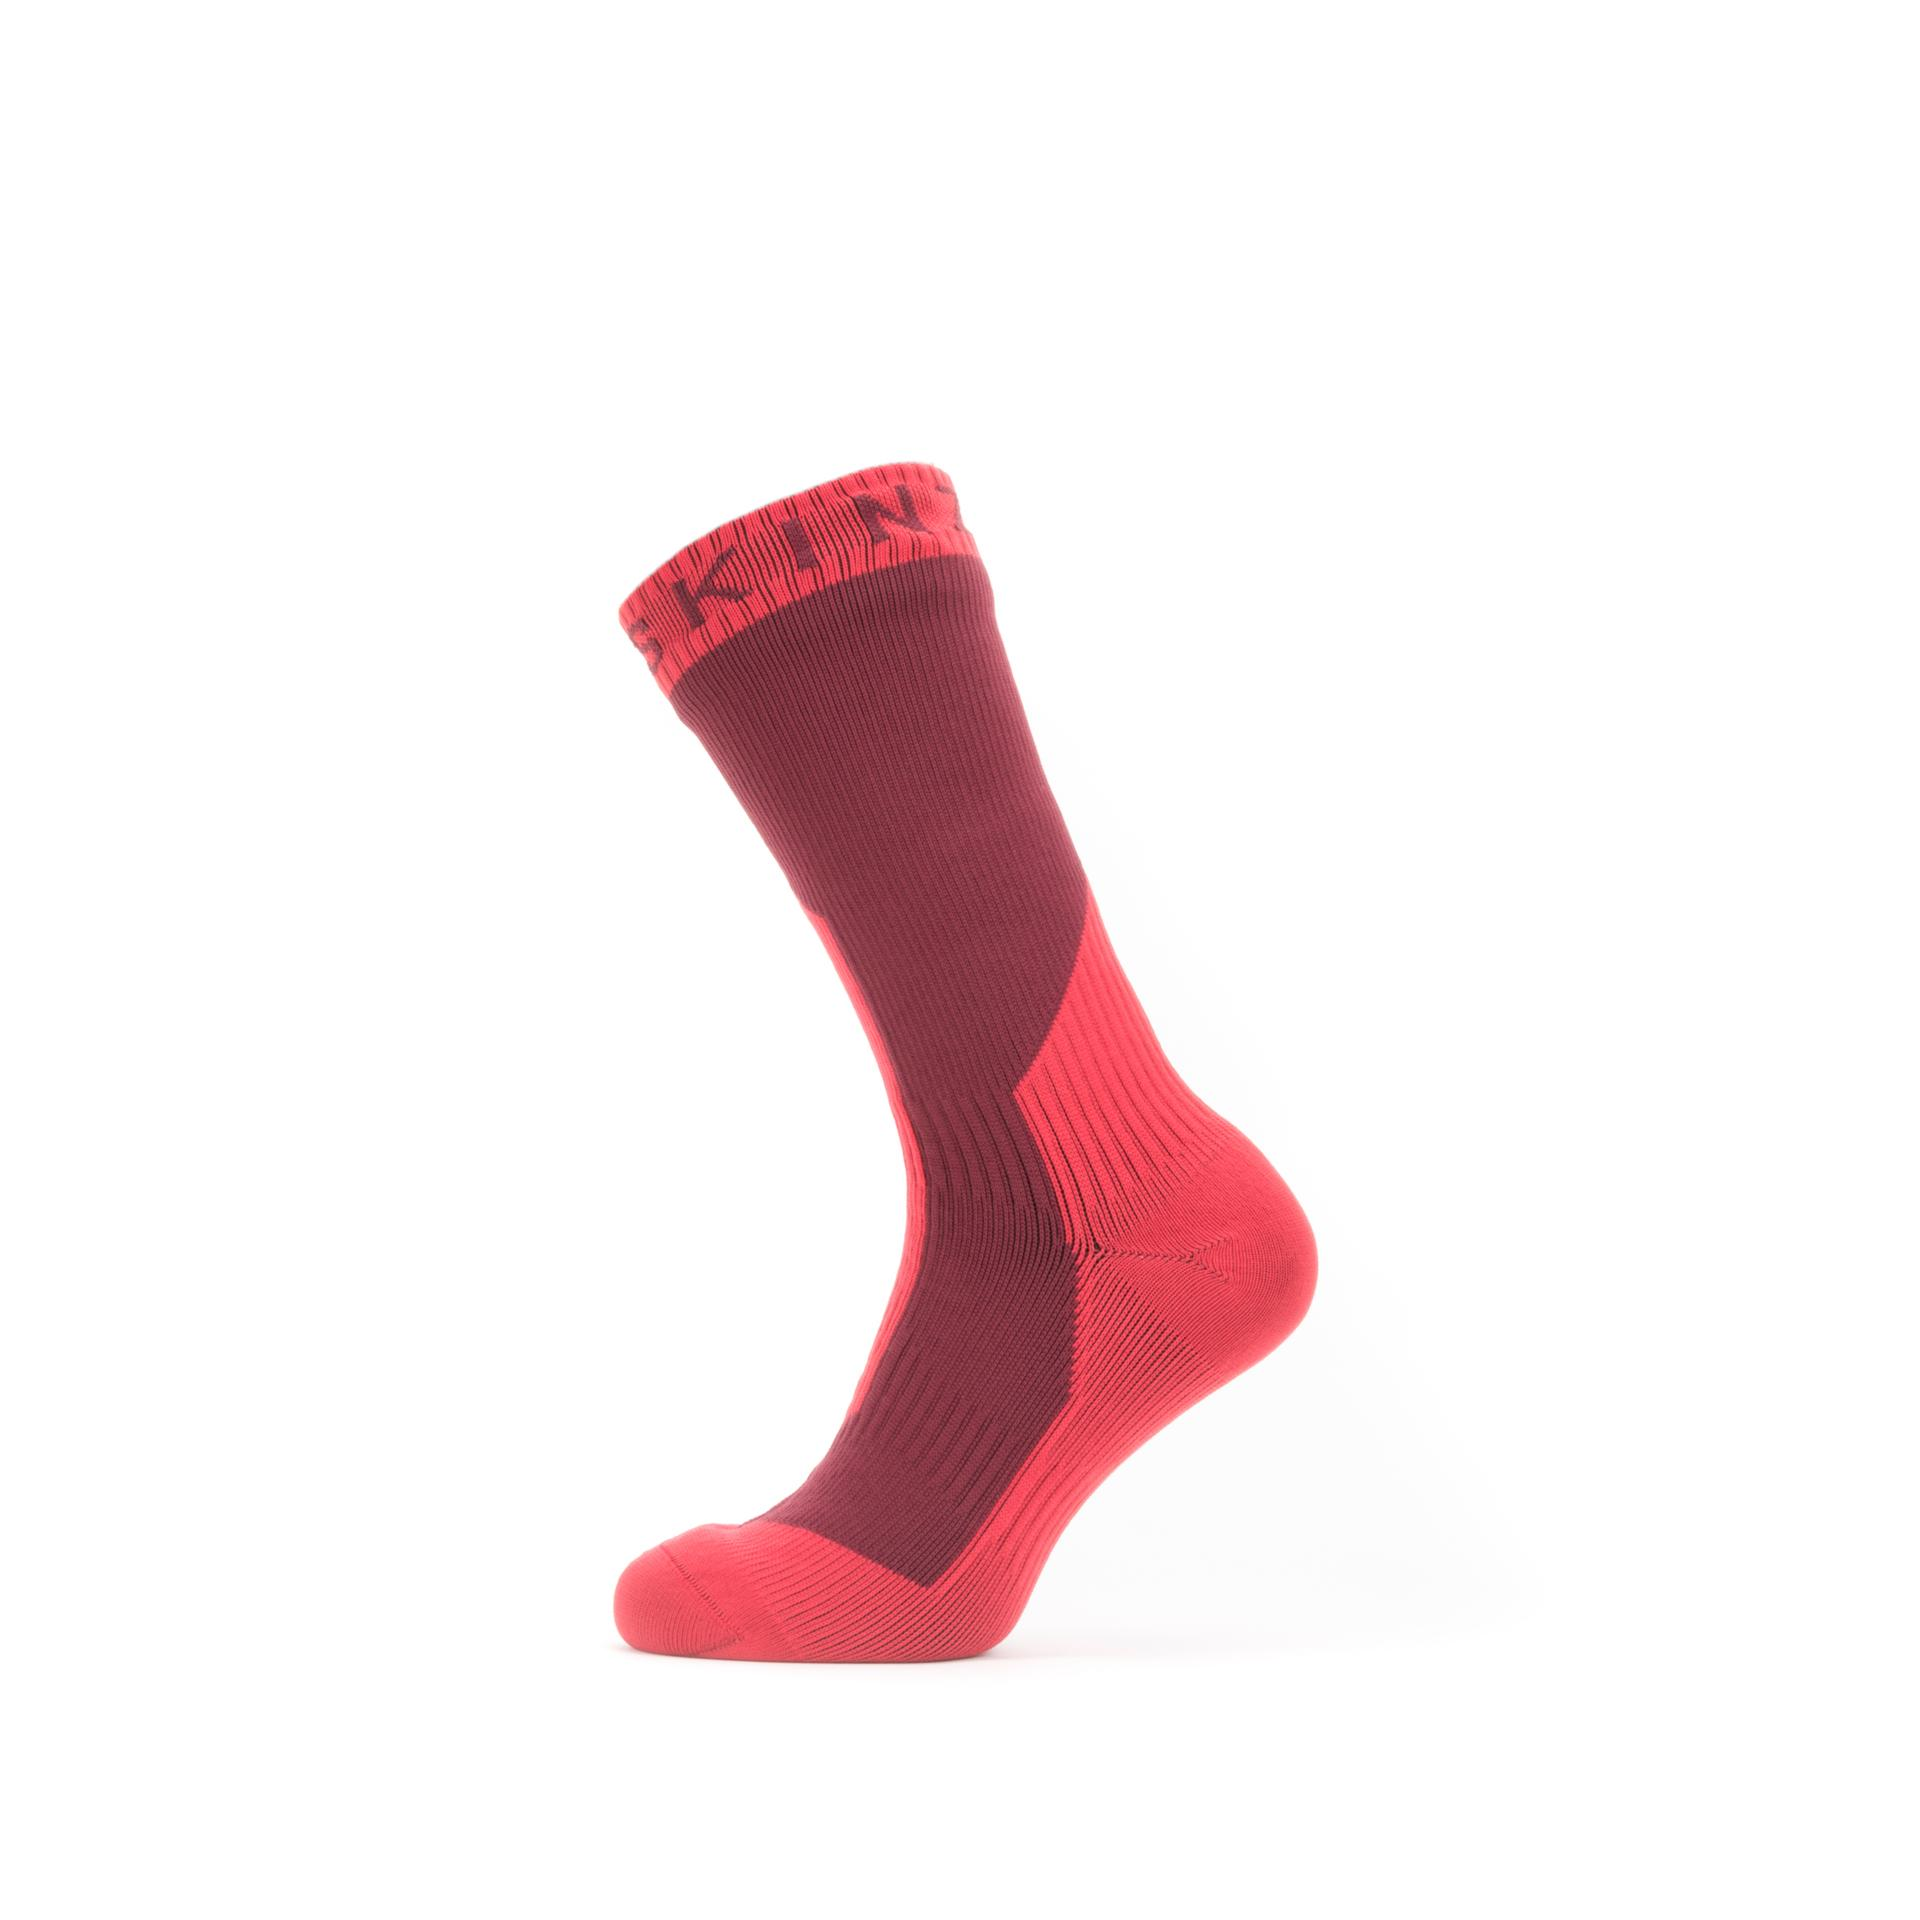 Afbeelding Sealskinz Fietssokken waterdicht voor Heren Rood  / Waterproof Extreme Cold Weather Mid Length Sock Red